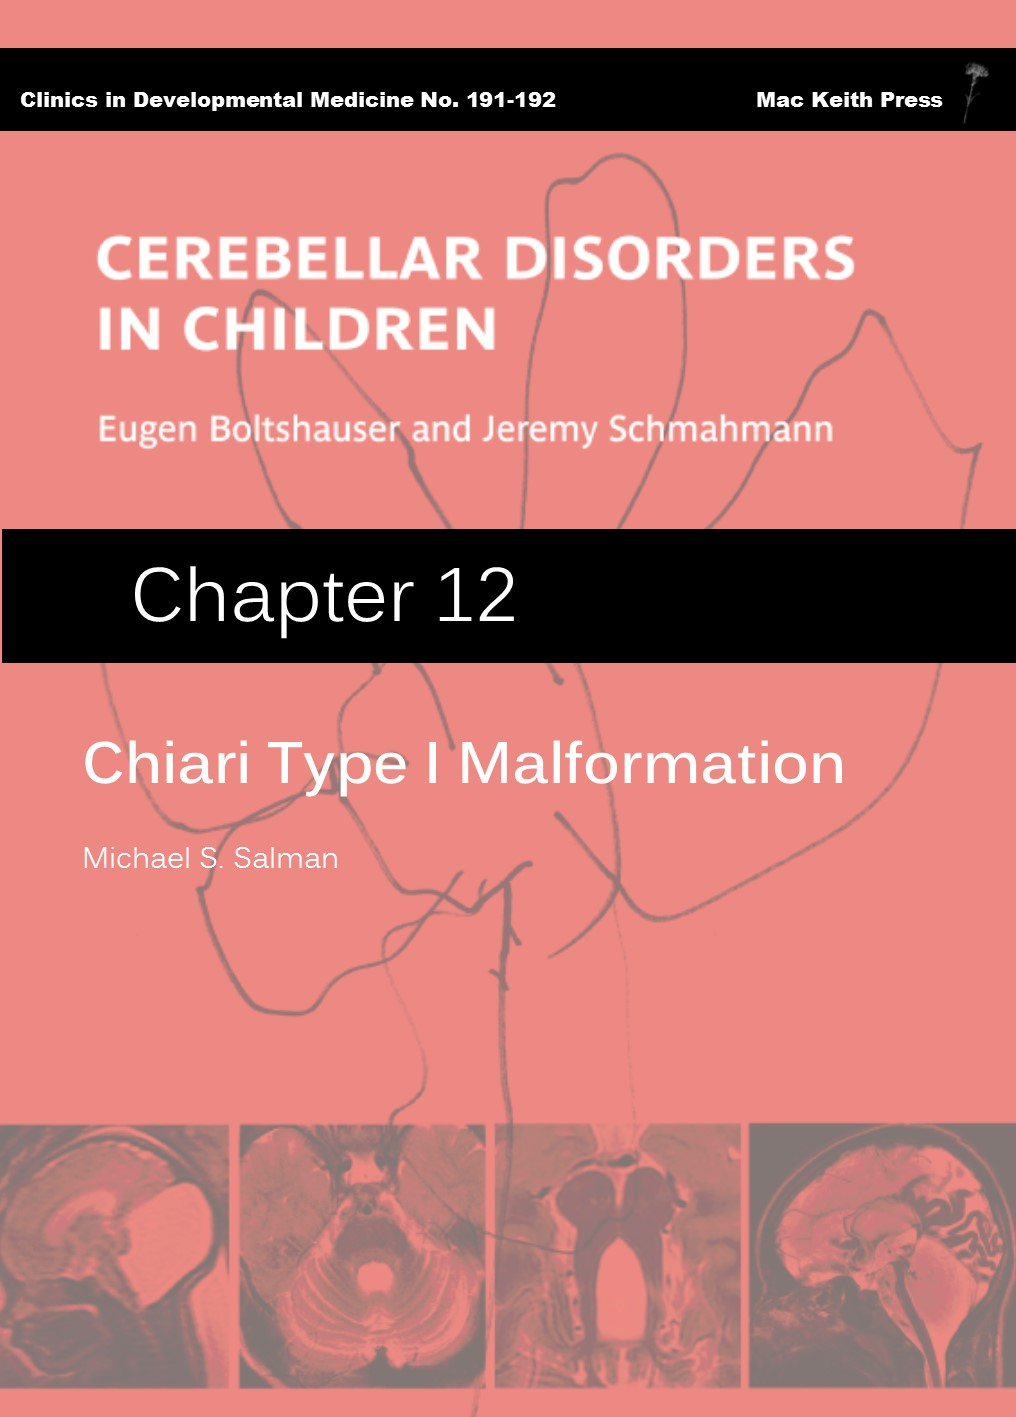 Chiari Type I Malformation - Cerebellar Disorders in Children (Chapter 12) COVER